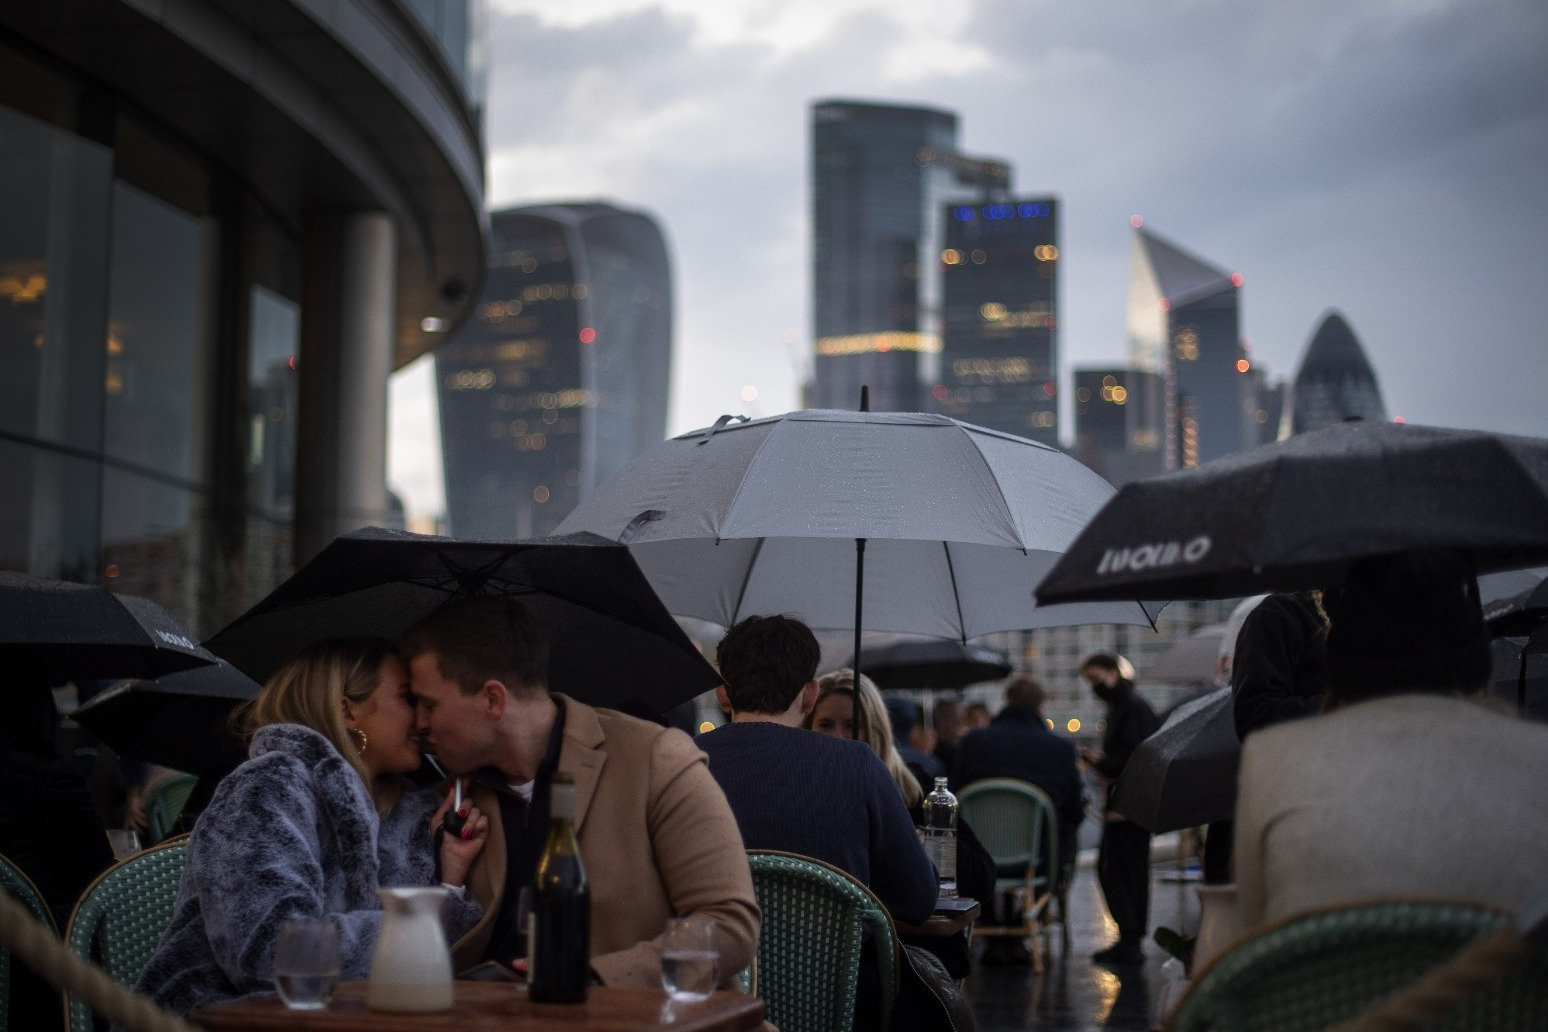 UK set for washout May as unsettled weather persists